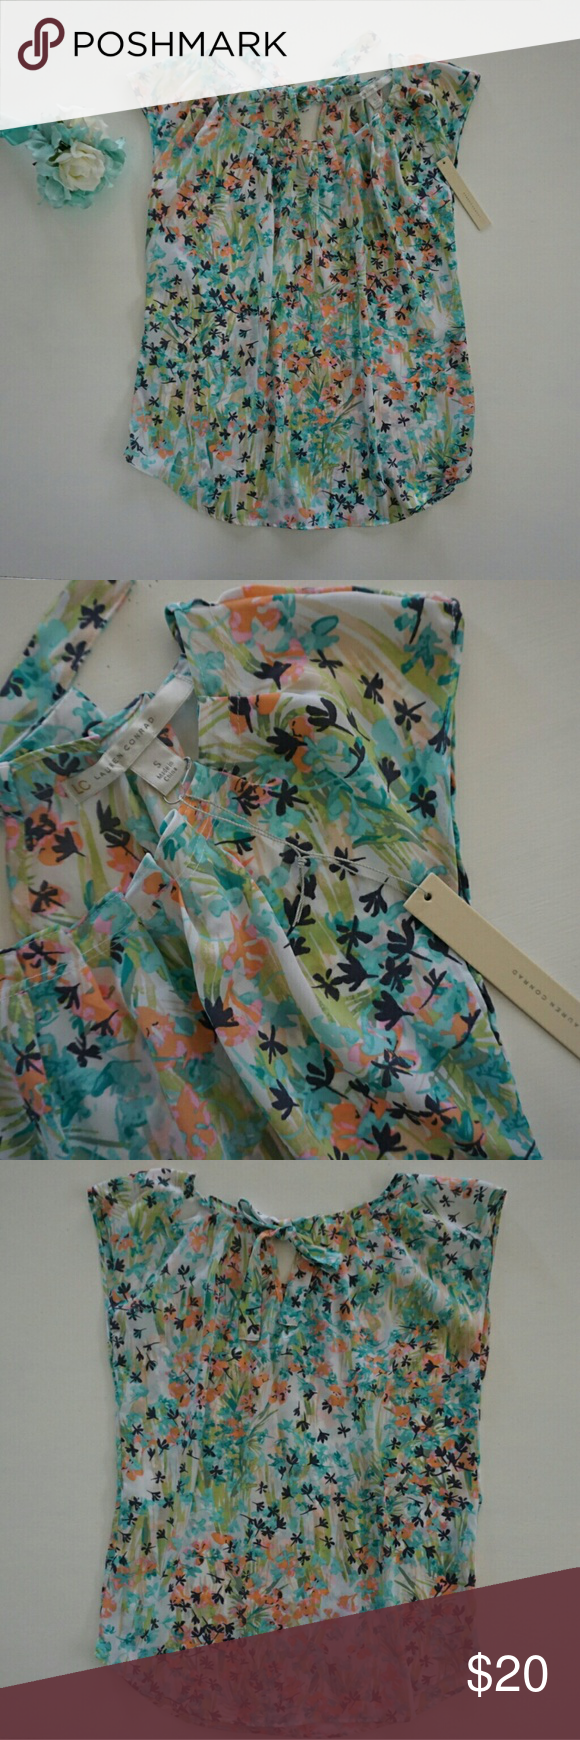 """LAUREN CONRAD PLEAT NECK FLORAL SHEER TOP Lauren Conrad pleat neck, sheer, short sleeved top with floral print and tie at back of neckine. Print is peach, pink, green, teal, aqua, eggplant purple, and white.  Size Small  Armpit to armpit 19"""" across laying flat  Shoulder to hem  26"""" New with tags Lauren Conrad  Tops Blouses"""